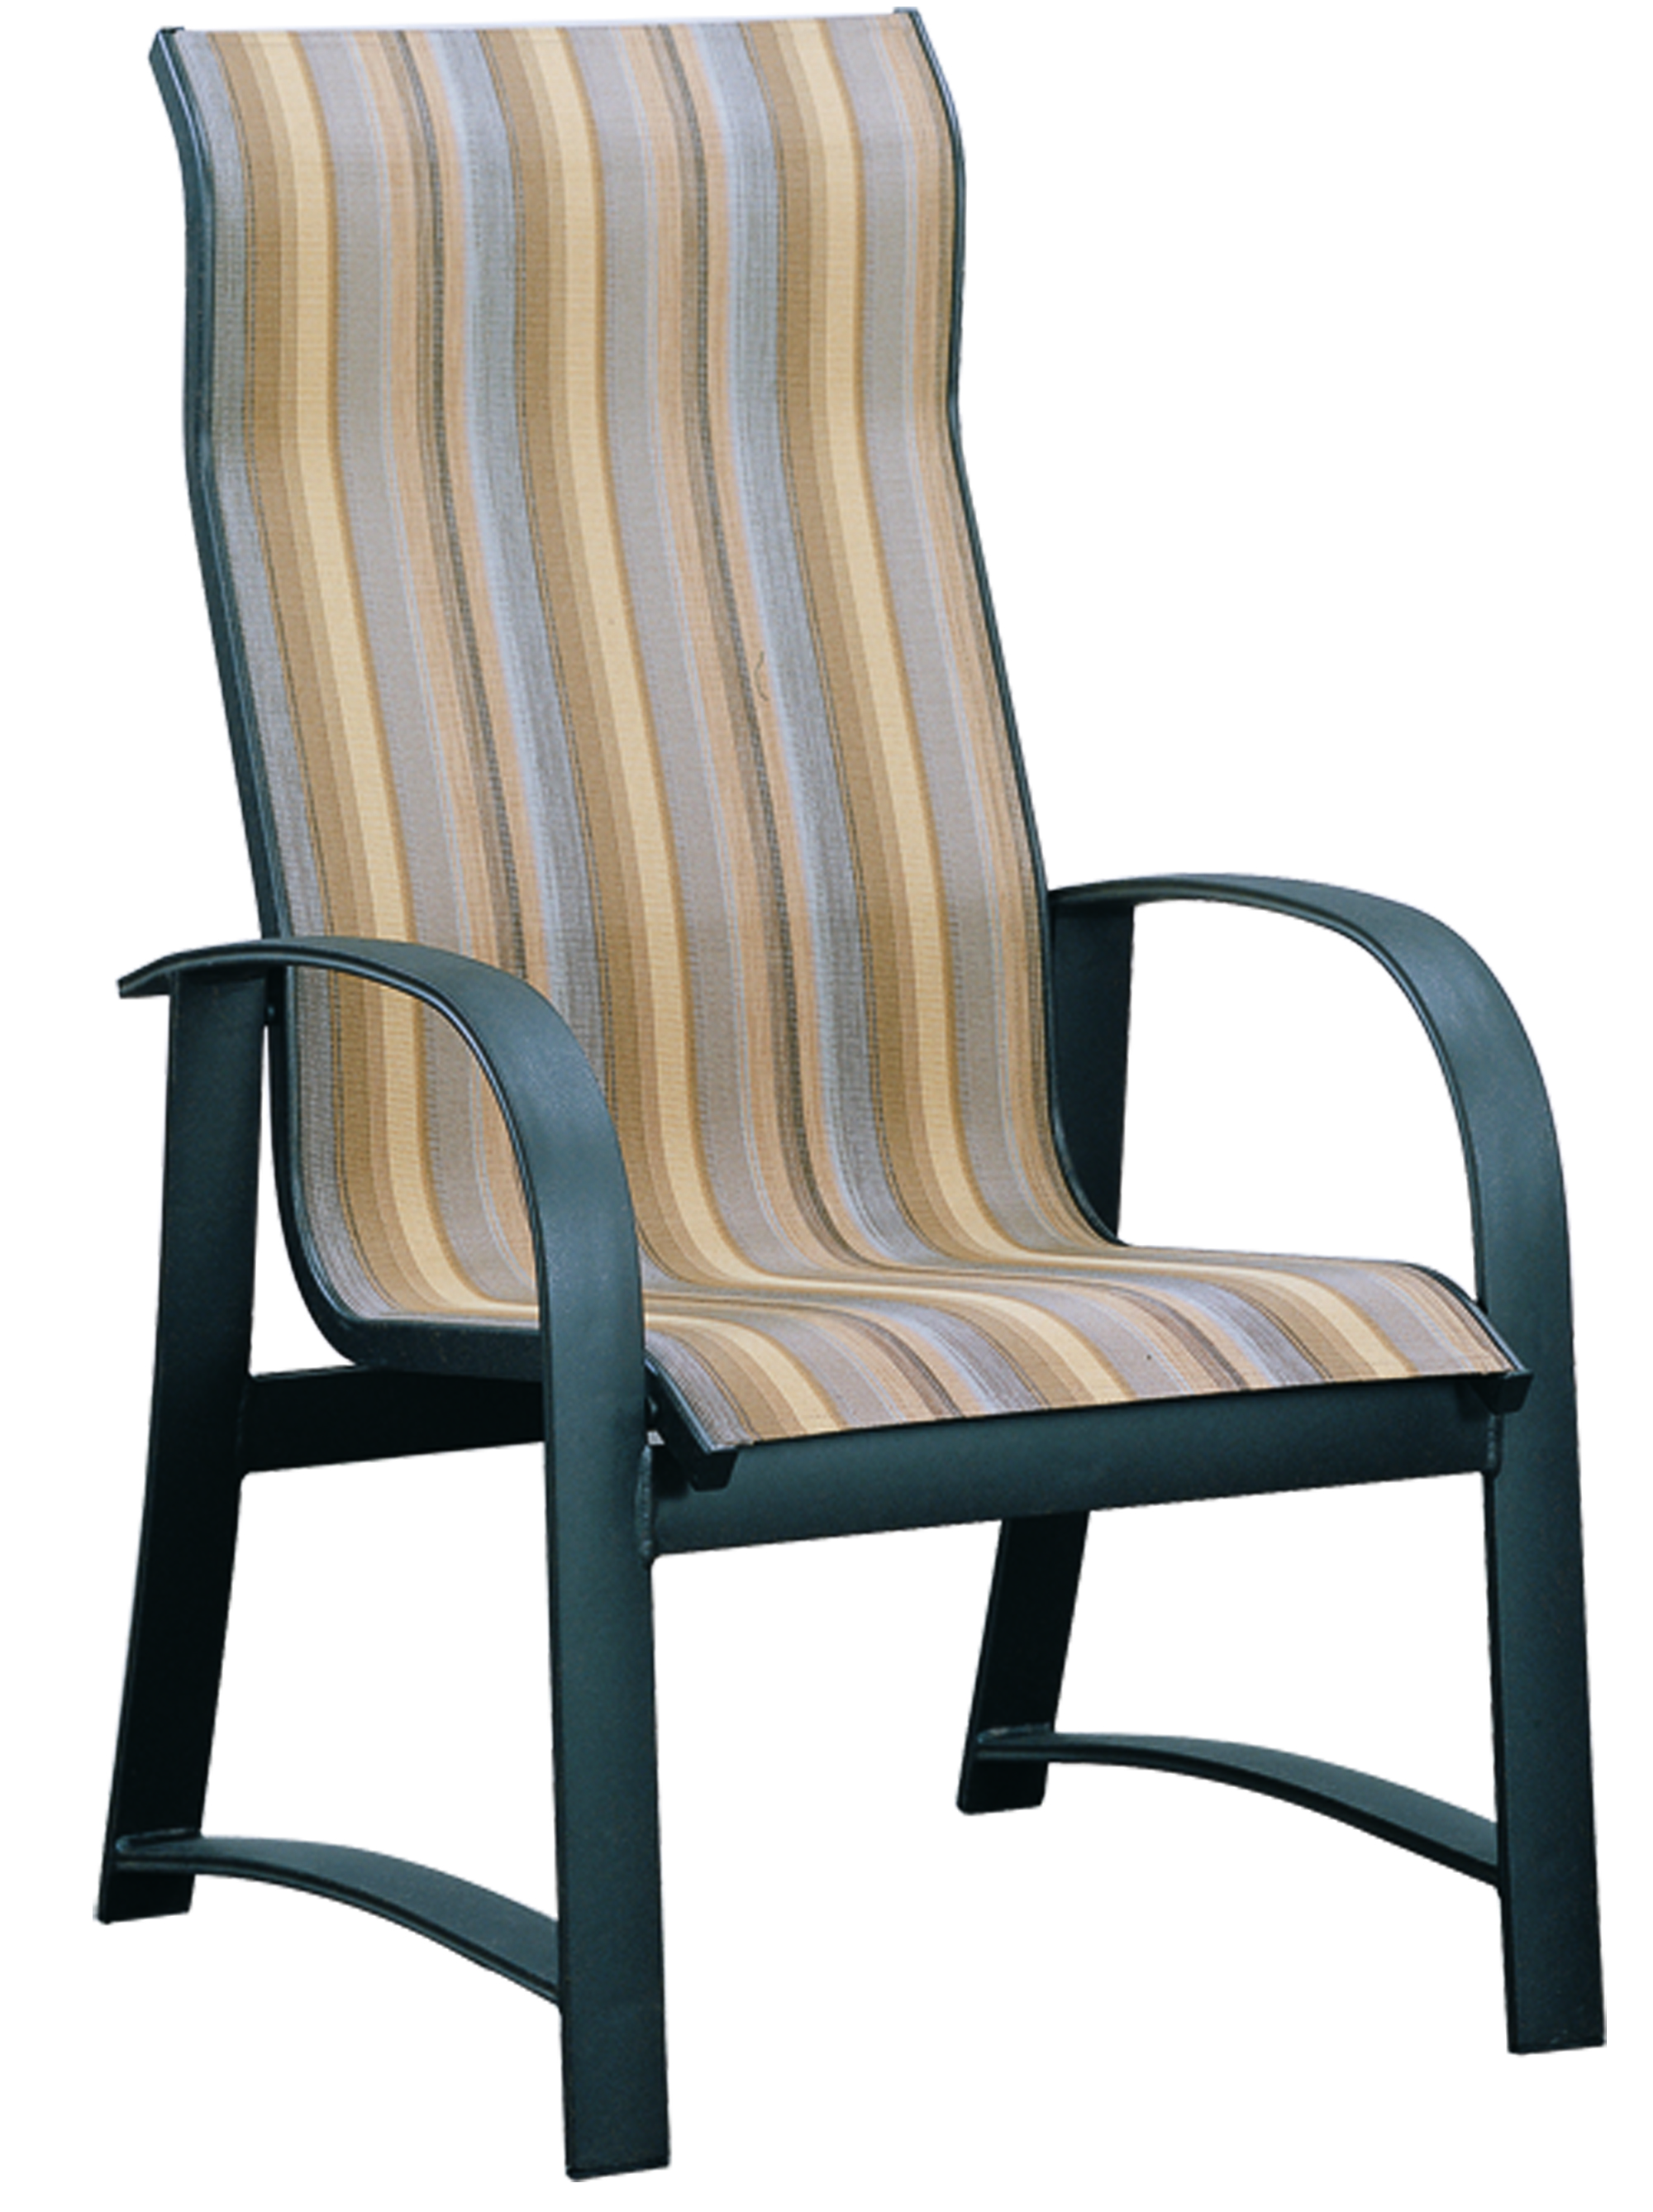 971021H Hermosa HB Dining Chair   25.4 x 29.5 x 42